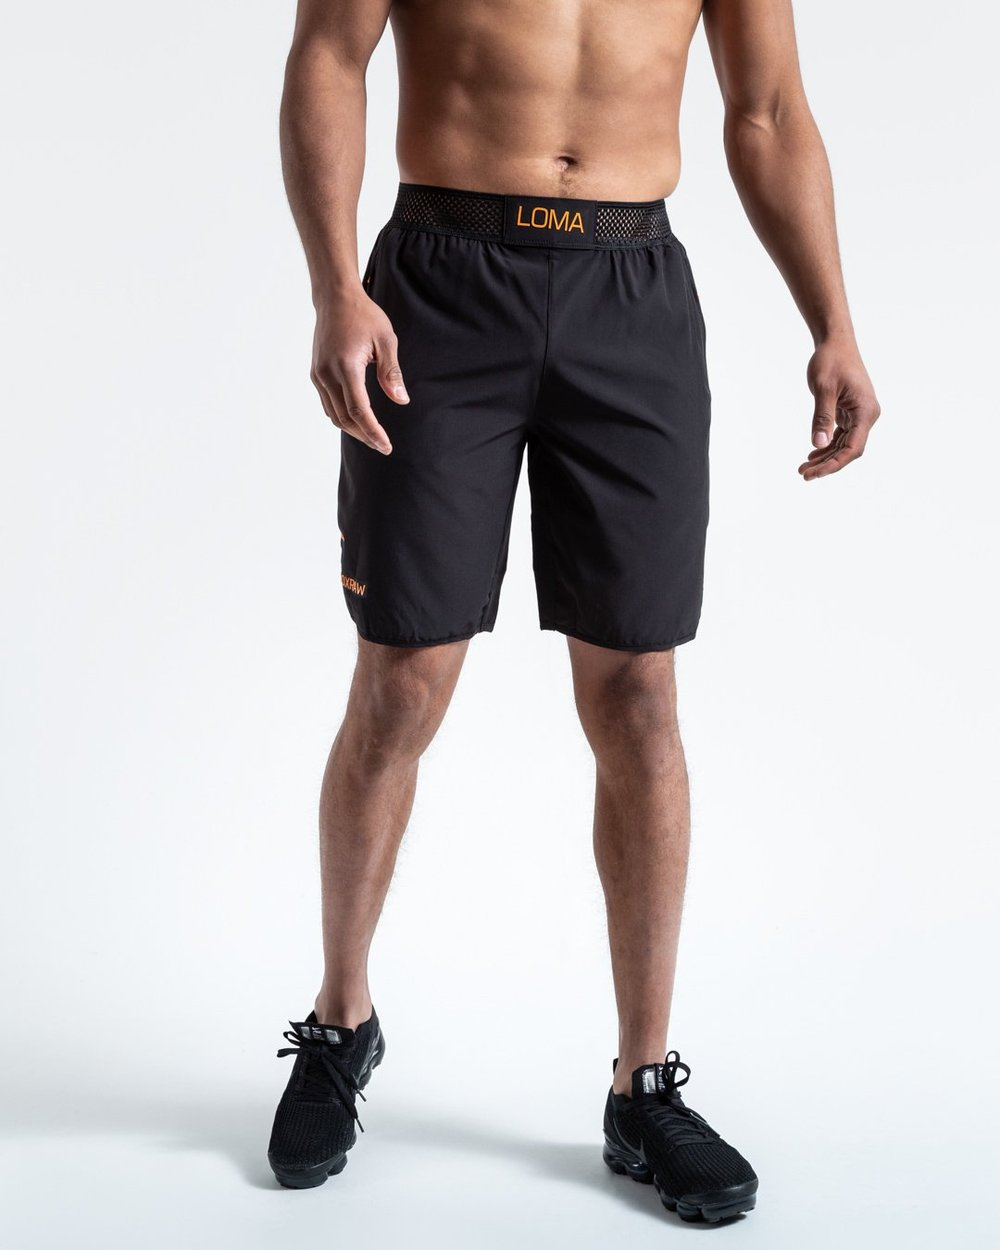 LOMA SHORTS - BLACK